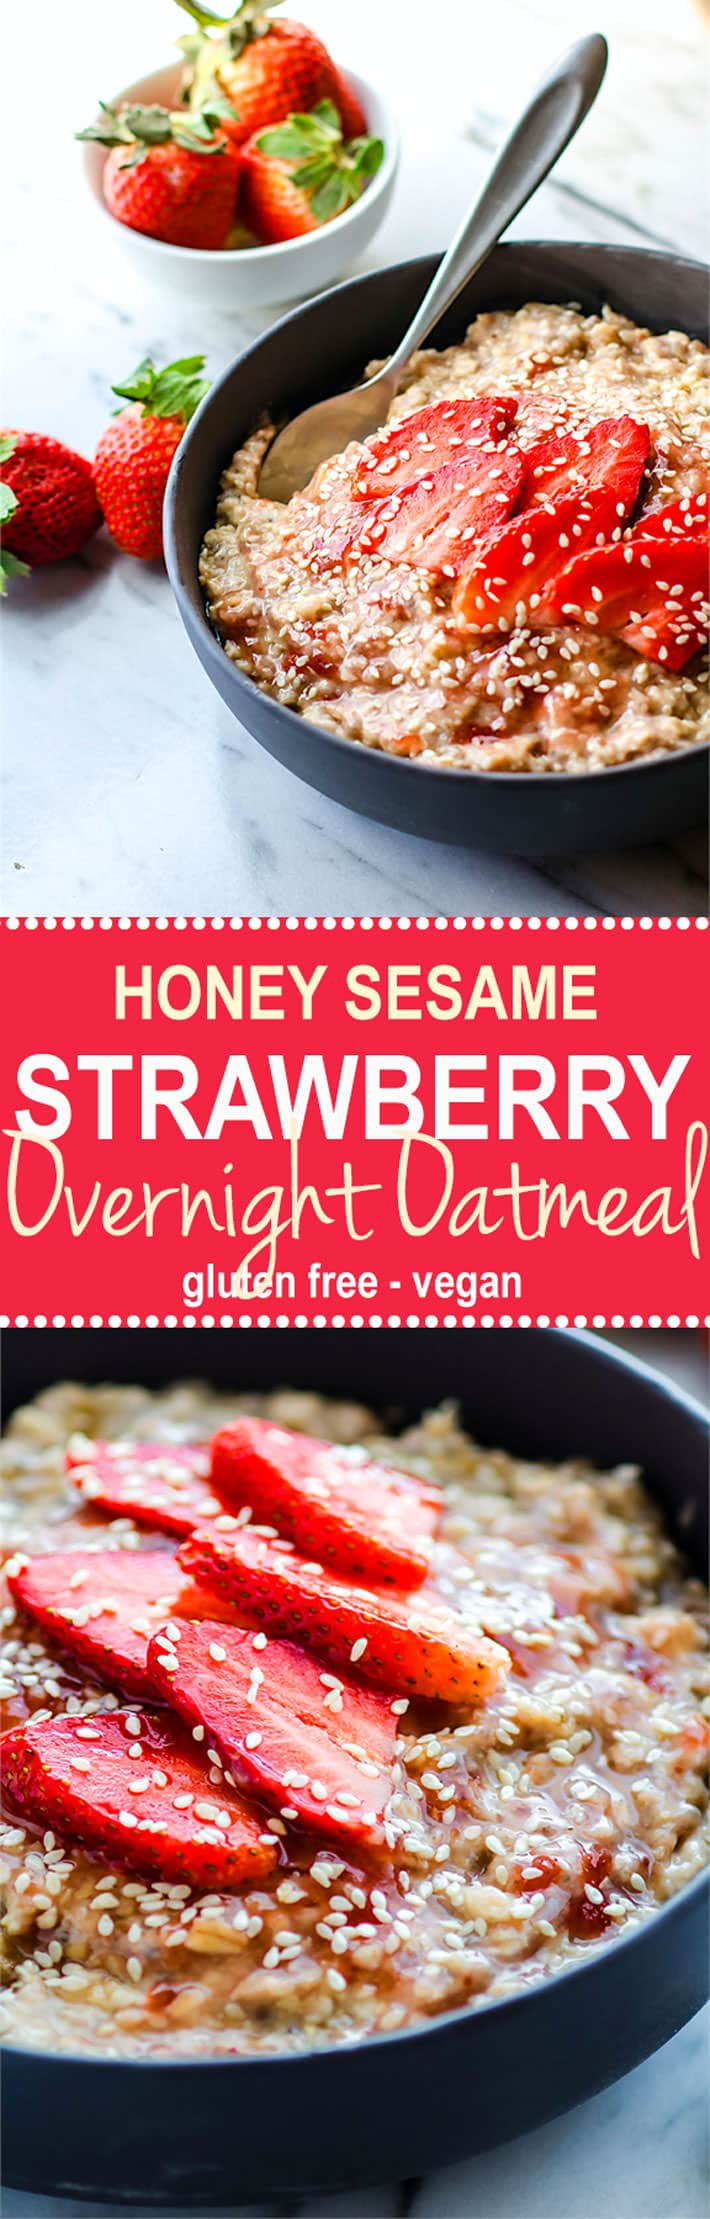 Gluten Free Honey Sesame Strawberry Overnight oatmeal! A light and energizing overnight oatmeal that is vegan, simple to make, and loaded with nourishment! @cottercrunch